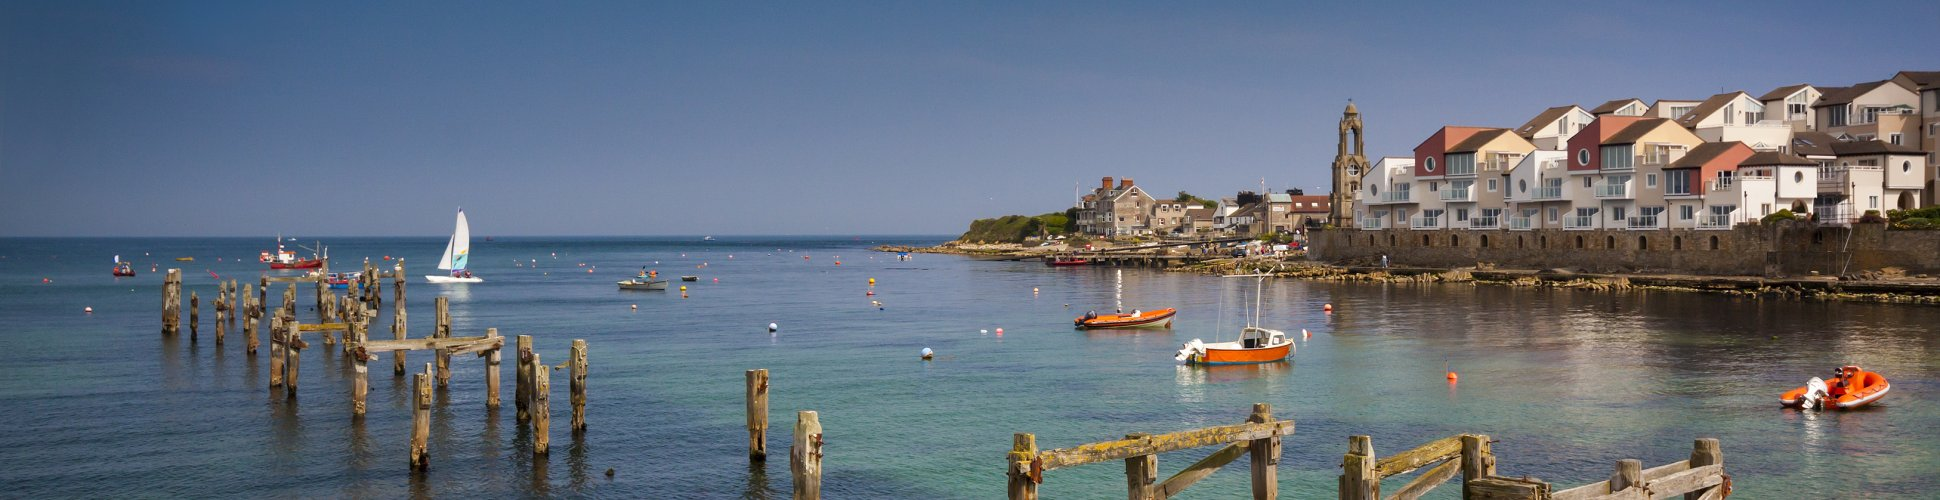 WPM Residential Lettings - Property to Let in Swanage and Purbeck